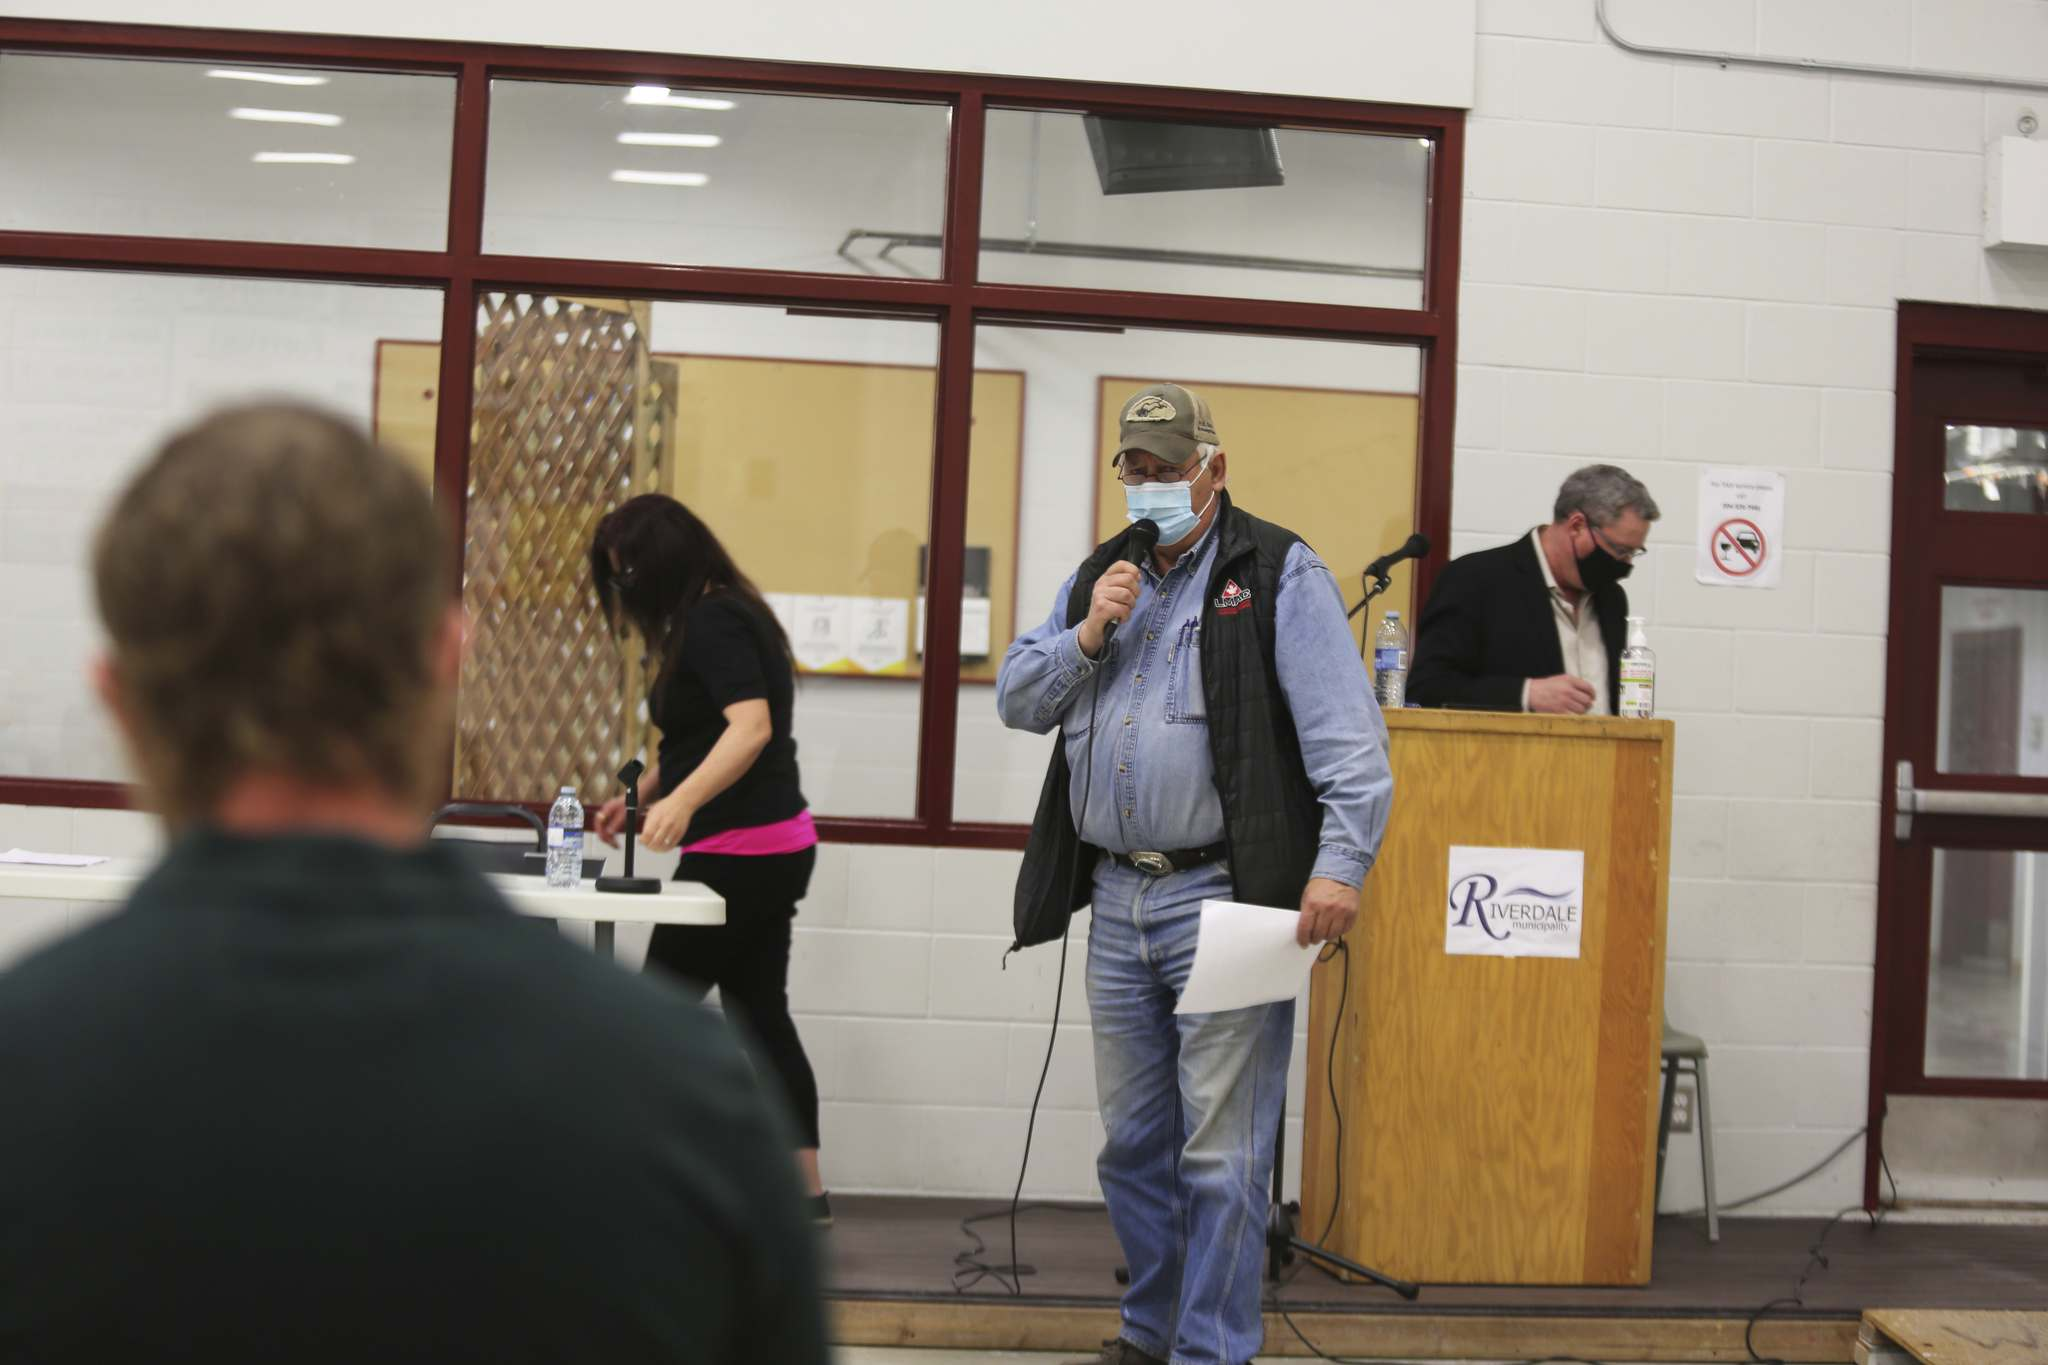 Rivers-area rancher Cliff Penno confronts a representative from Western Asphalt Products on Tuesday evening about the company's application to set up aggregate mining operations south of the town. The Riverdale Municipality heard from at least a dozen or so residents during this public hearing on the topic, which took place inside the local community centre's curling rink. (Kyle Darbyson/The Brandon Sun)</p></p>